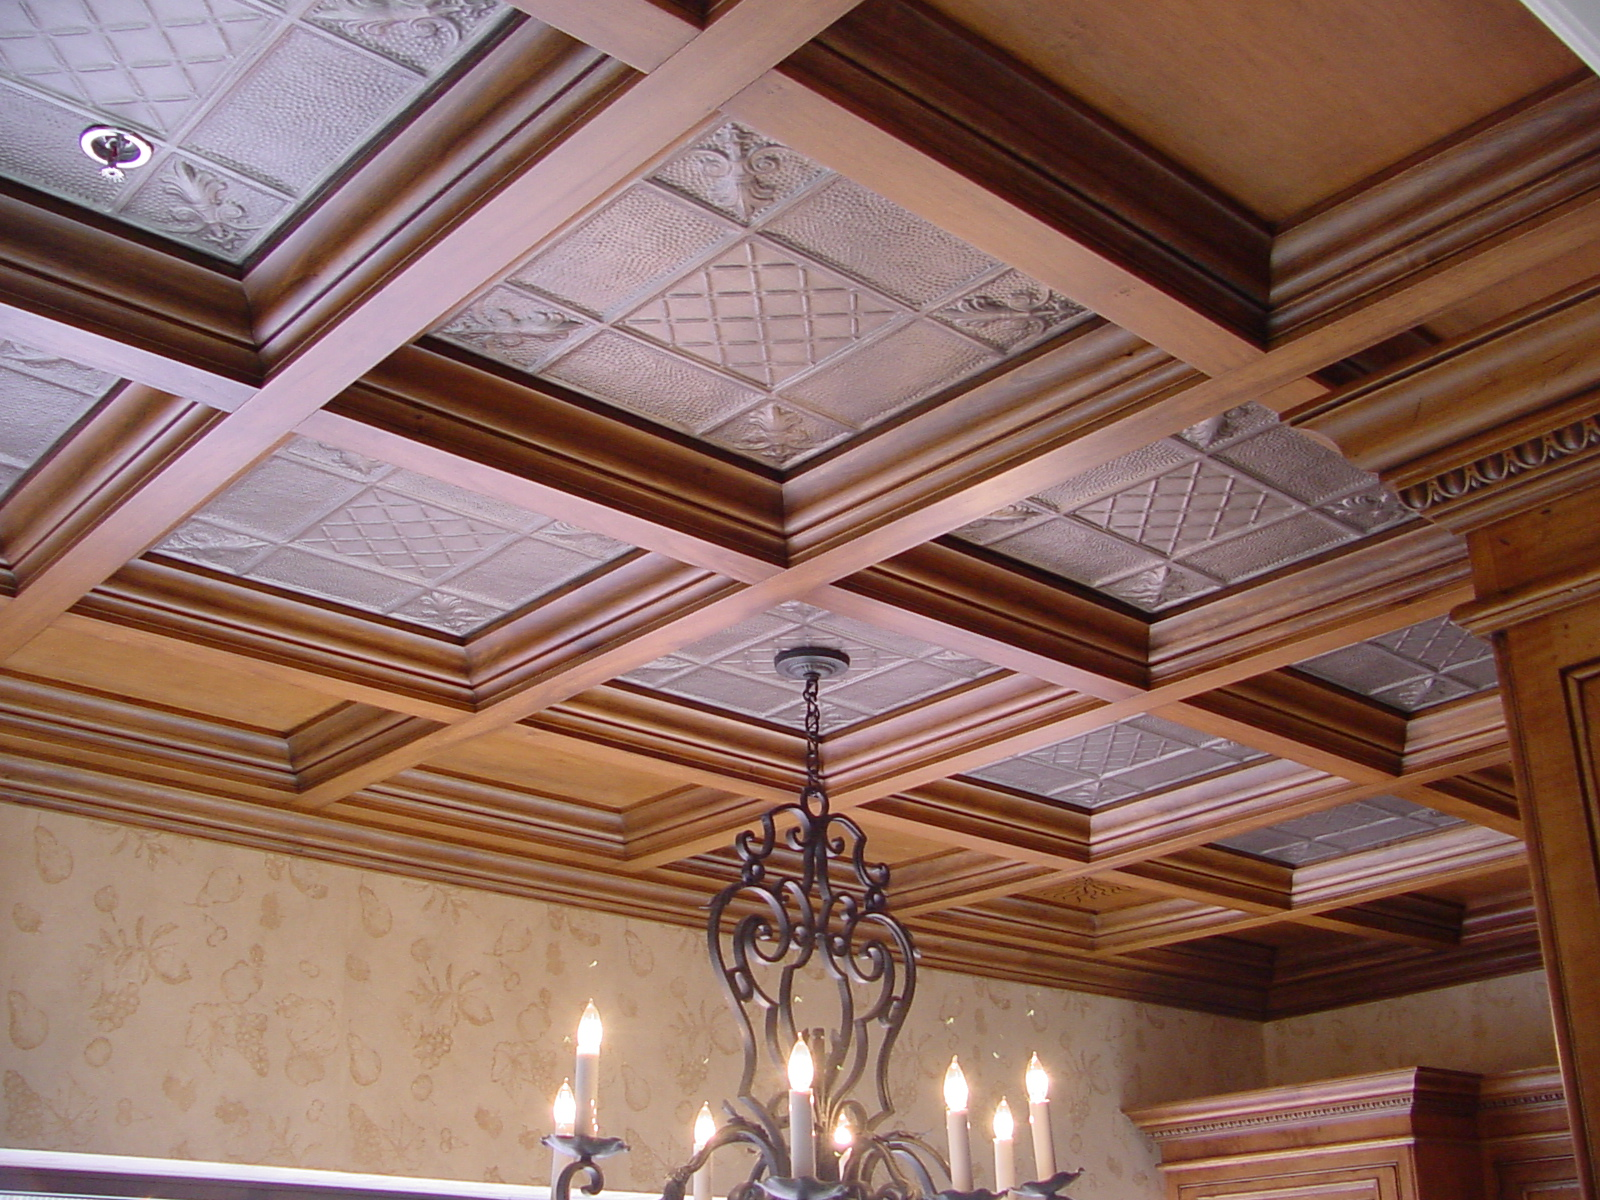 How to build a coffered ceiling - Wood Ceilings